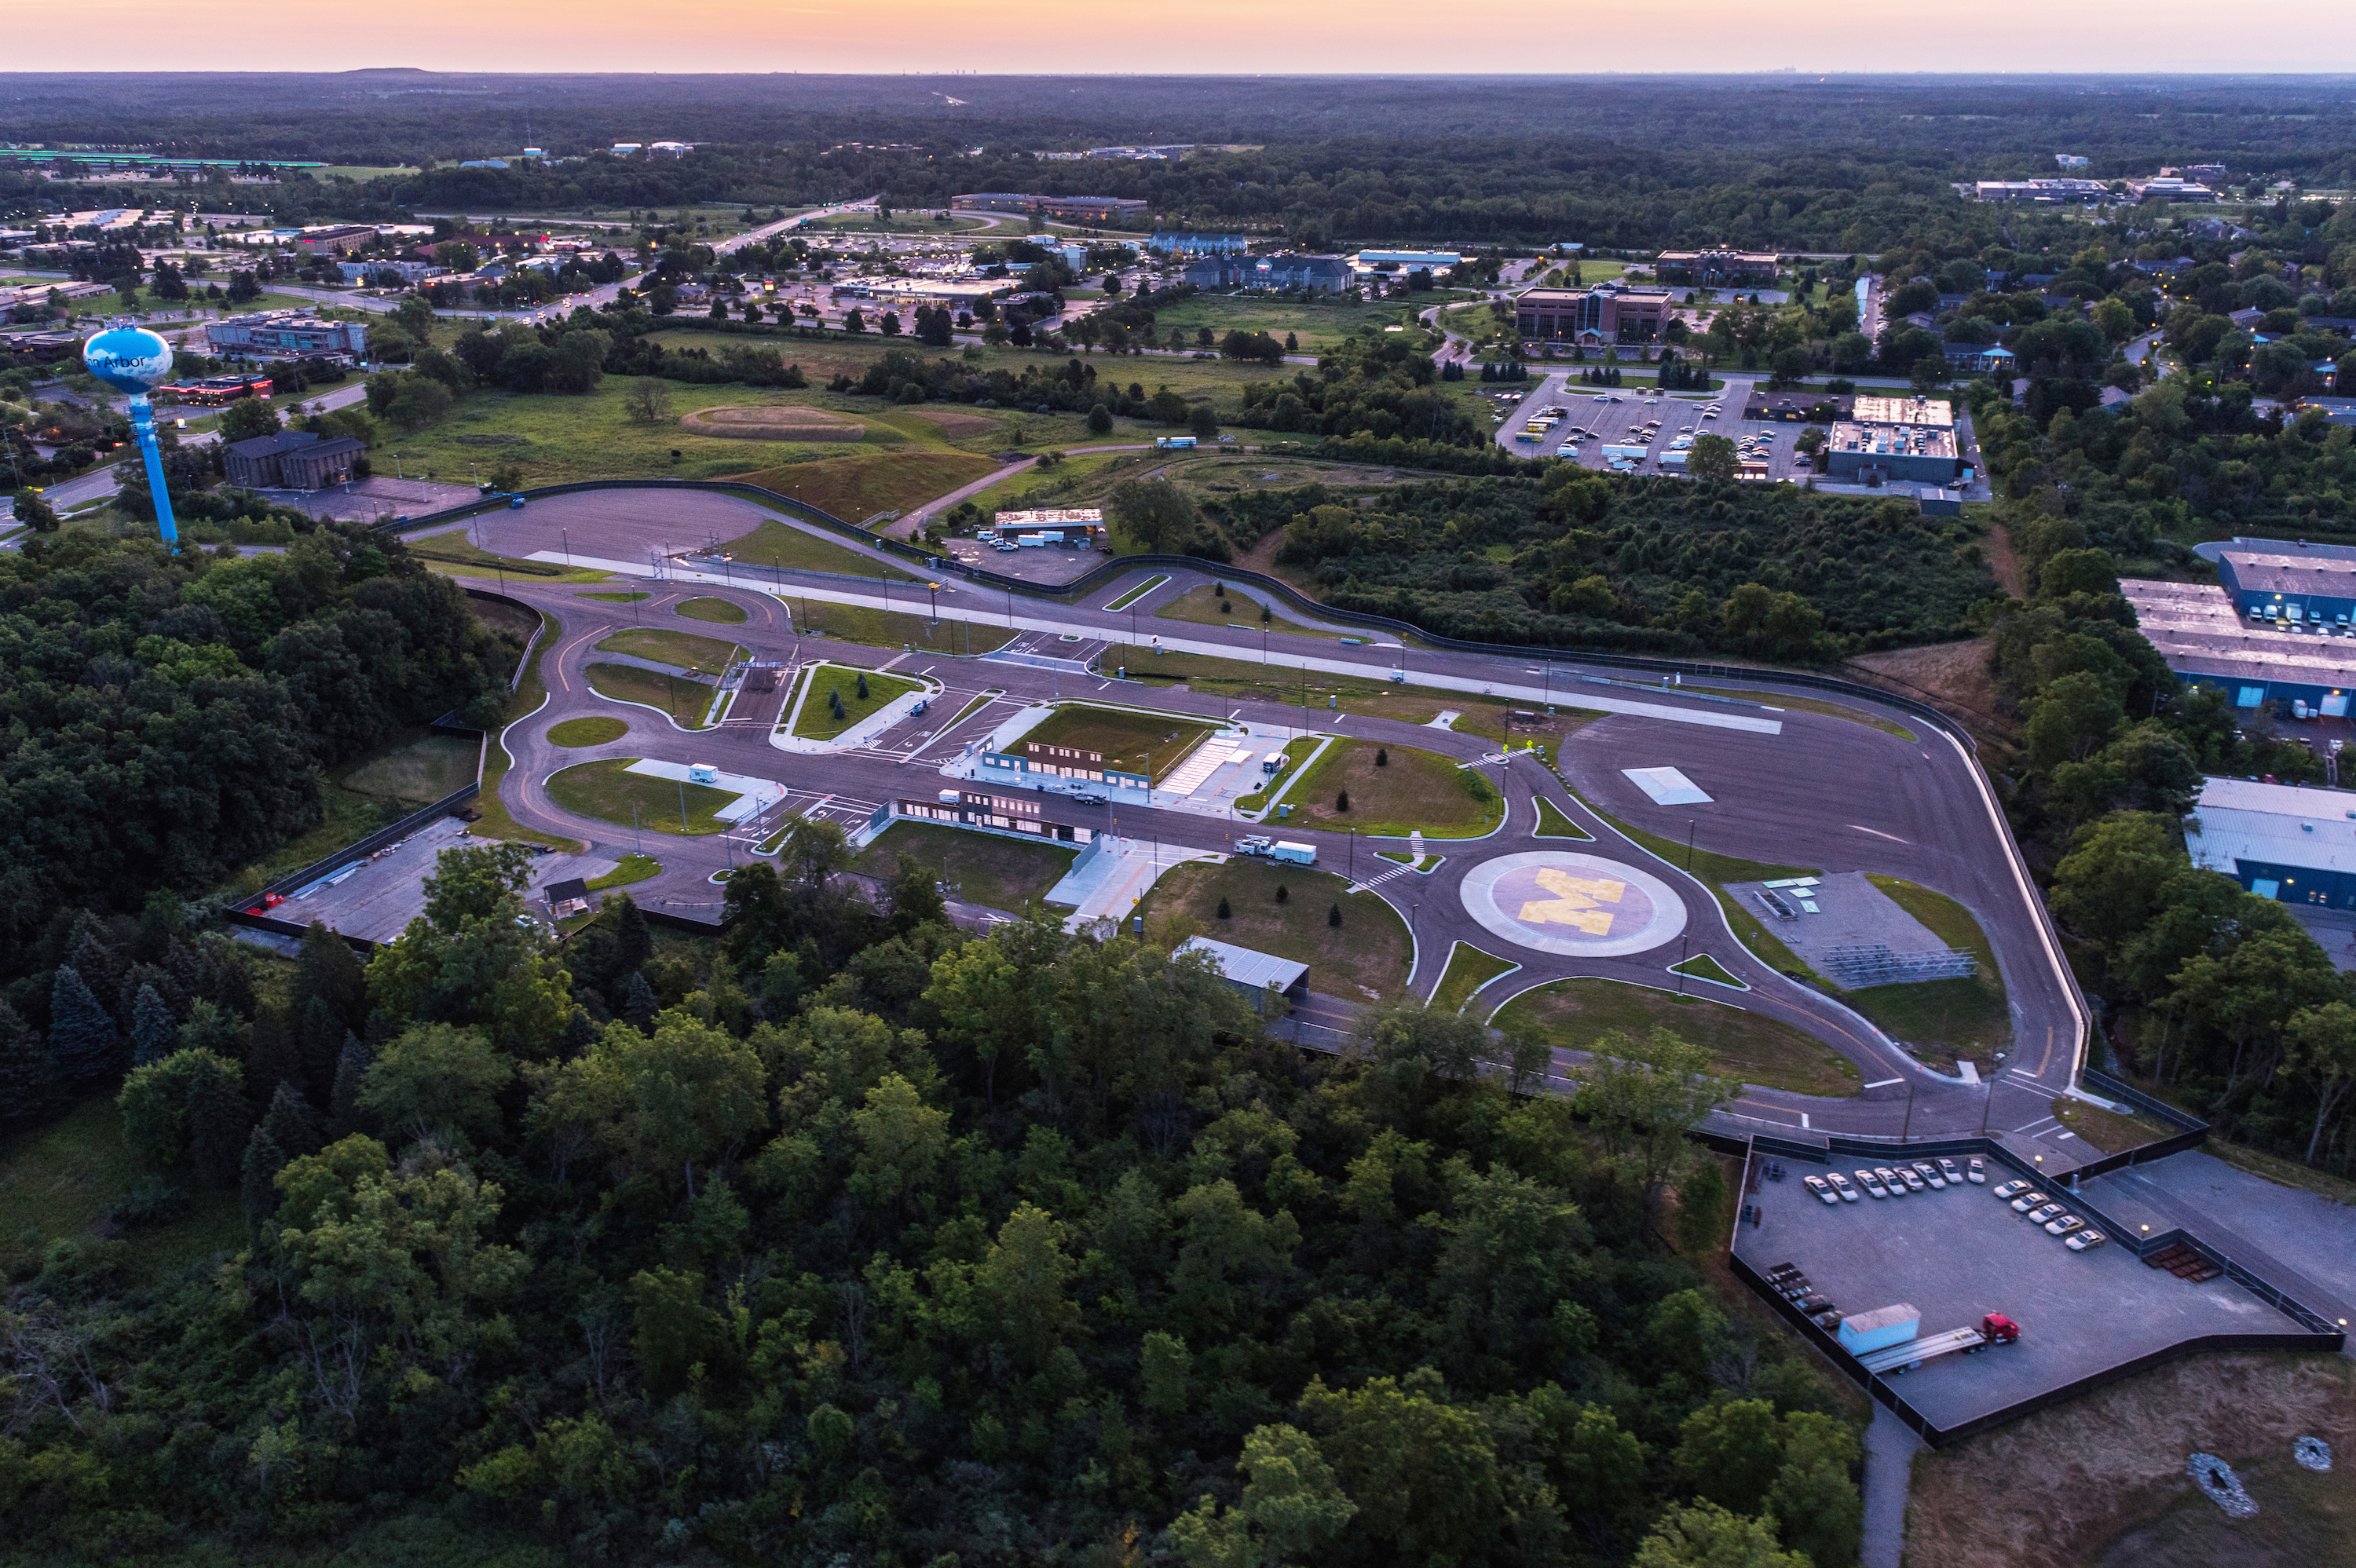 The Mcity site packs a lot of driving variety into 32 acres on the University of Michigan campus.